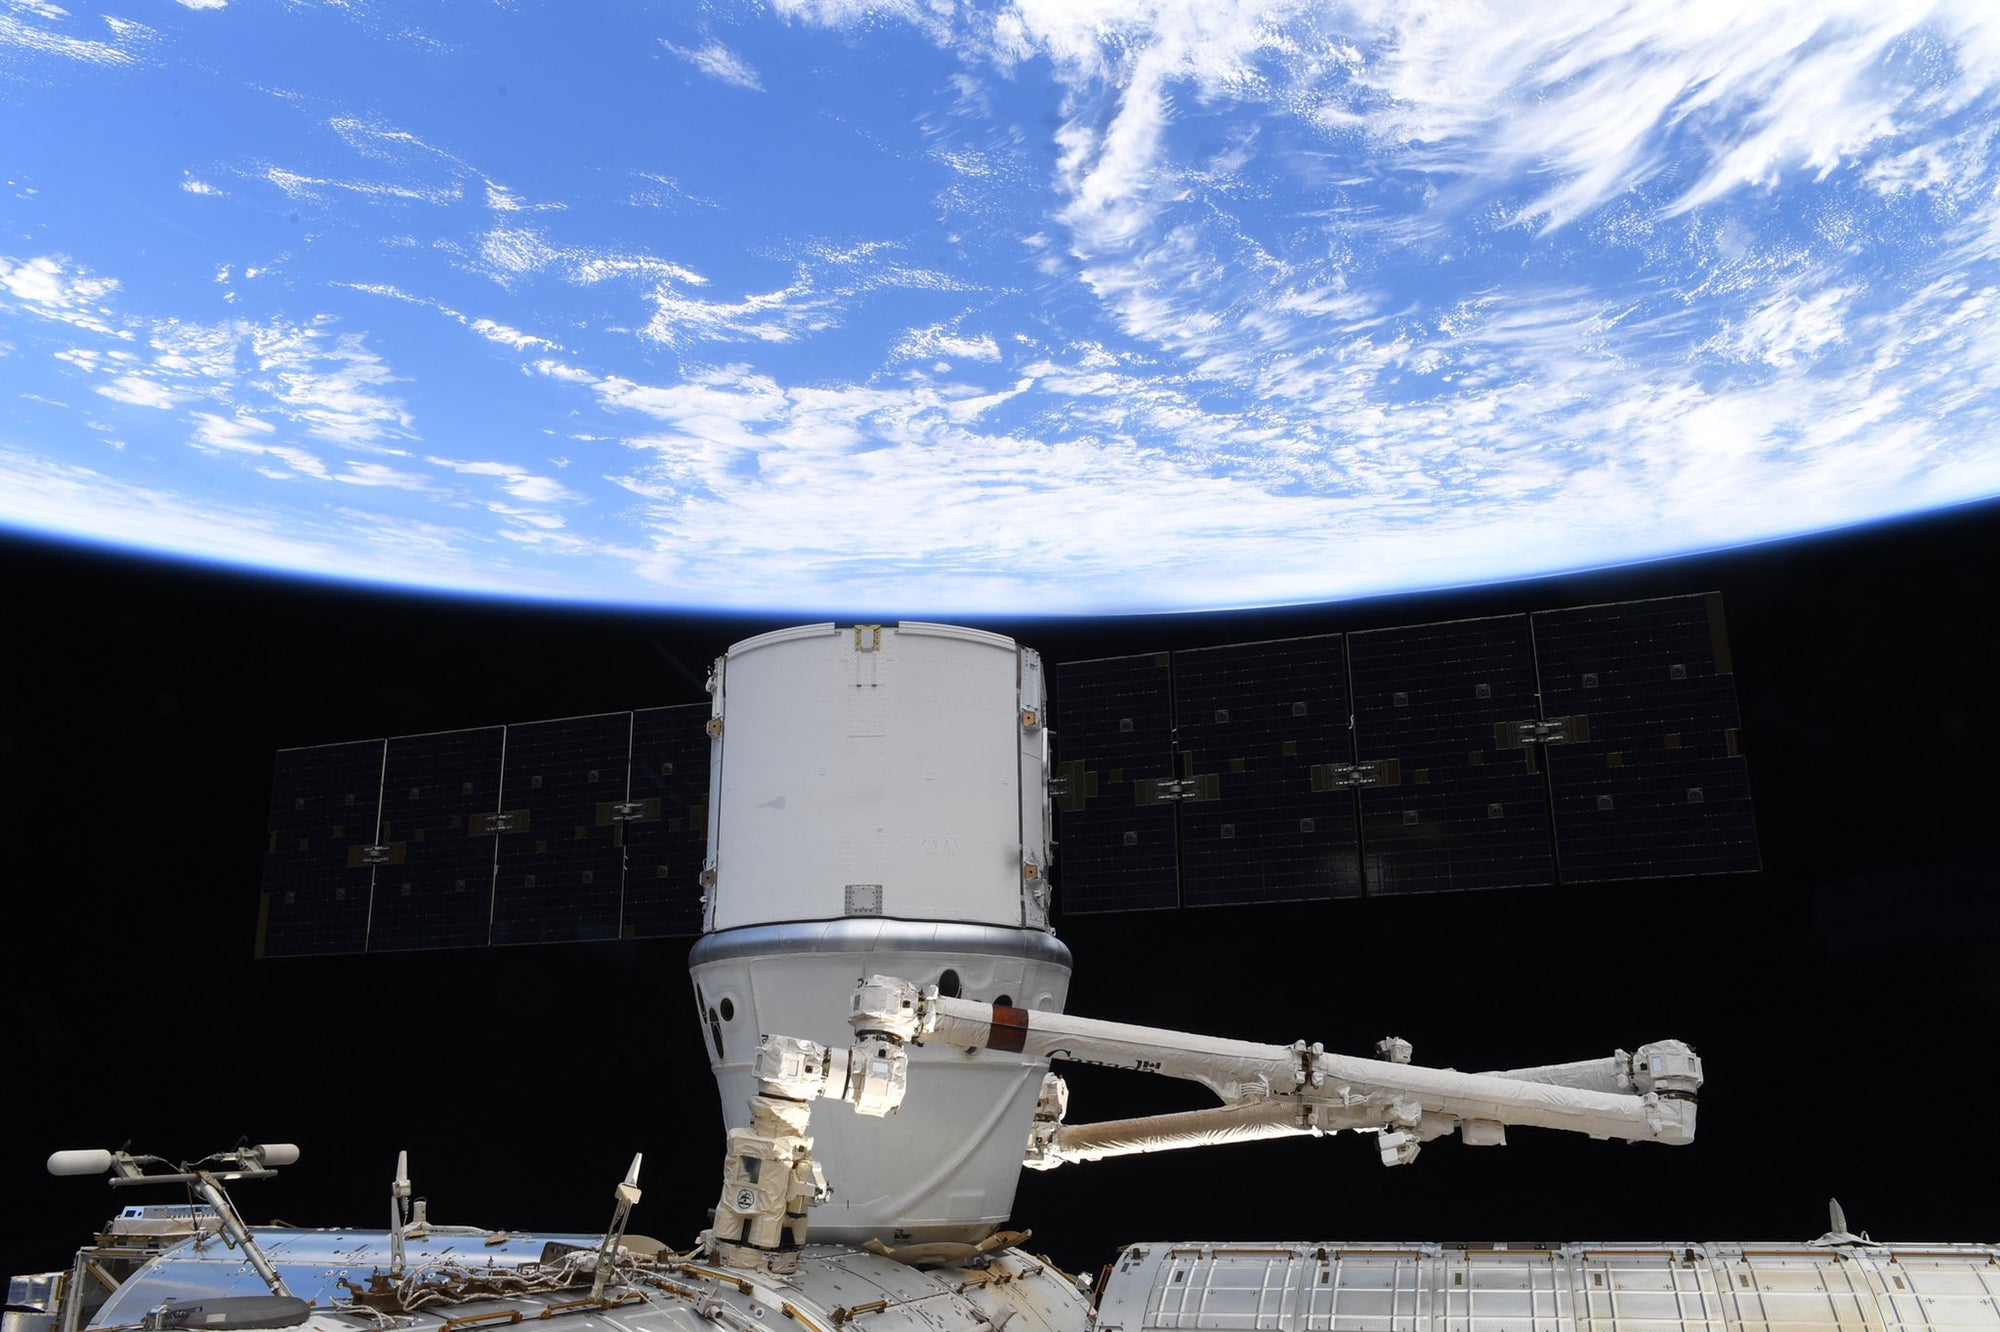 SpaceX Dragon docked to the Space Station today -Expedition 62 NASA Astronauts will unload the cargo